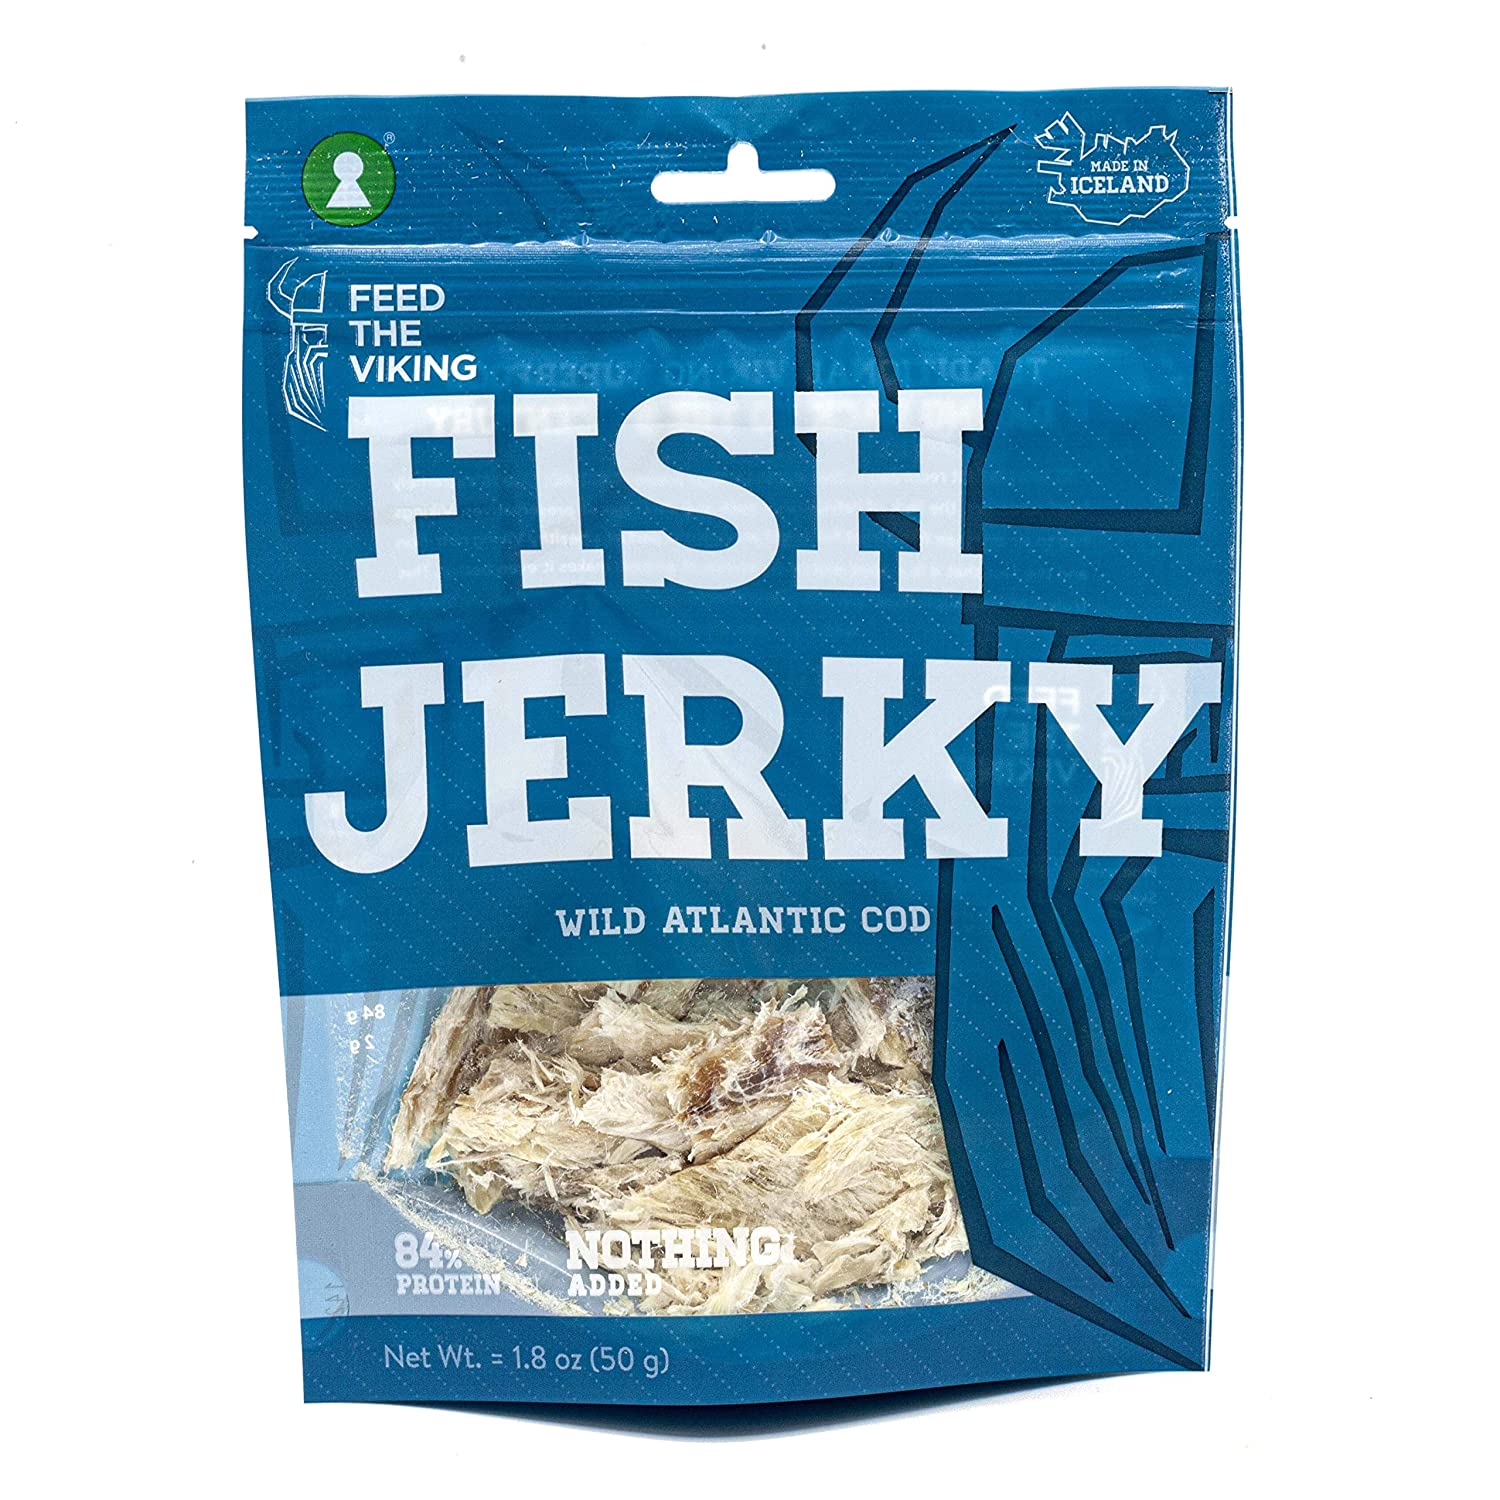 Dried Fish Jerky At the price - 1 PACK 50g Cod from Wild Spasm price of Atlantic 1.8oz